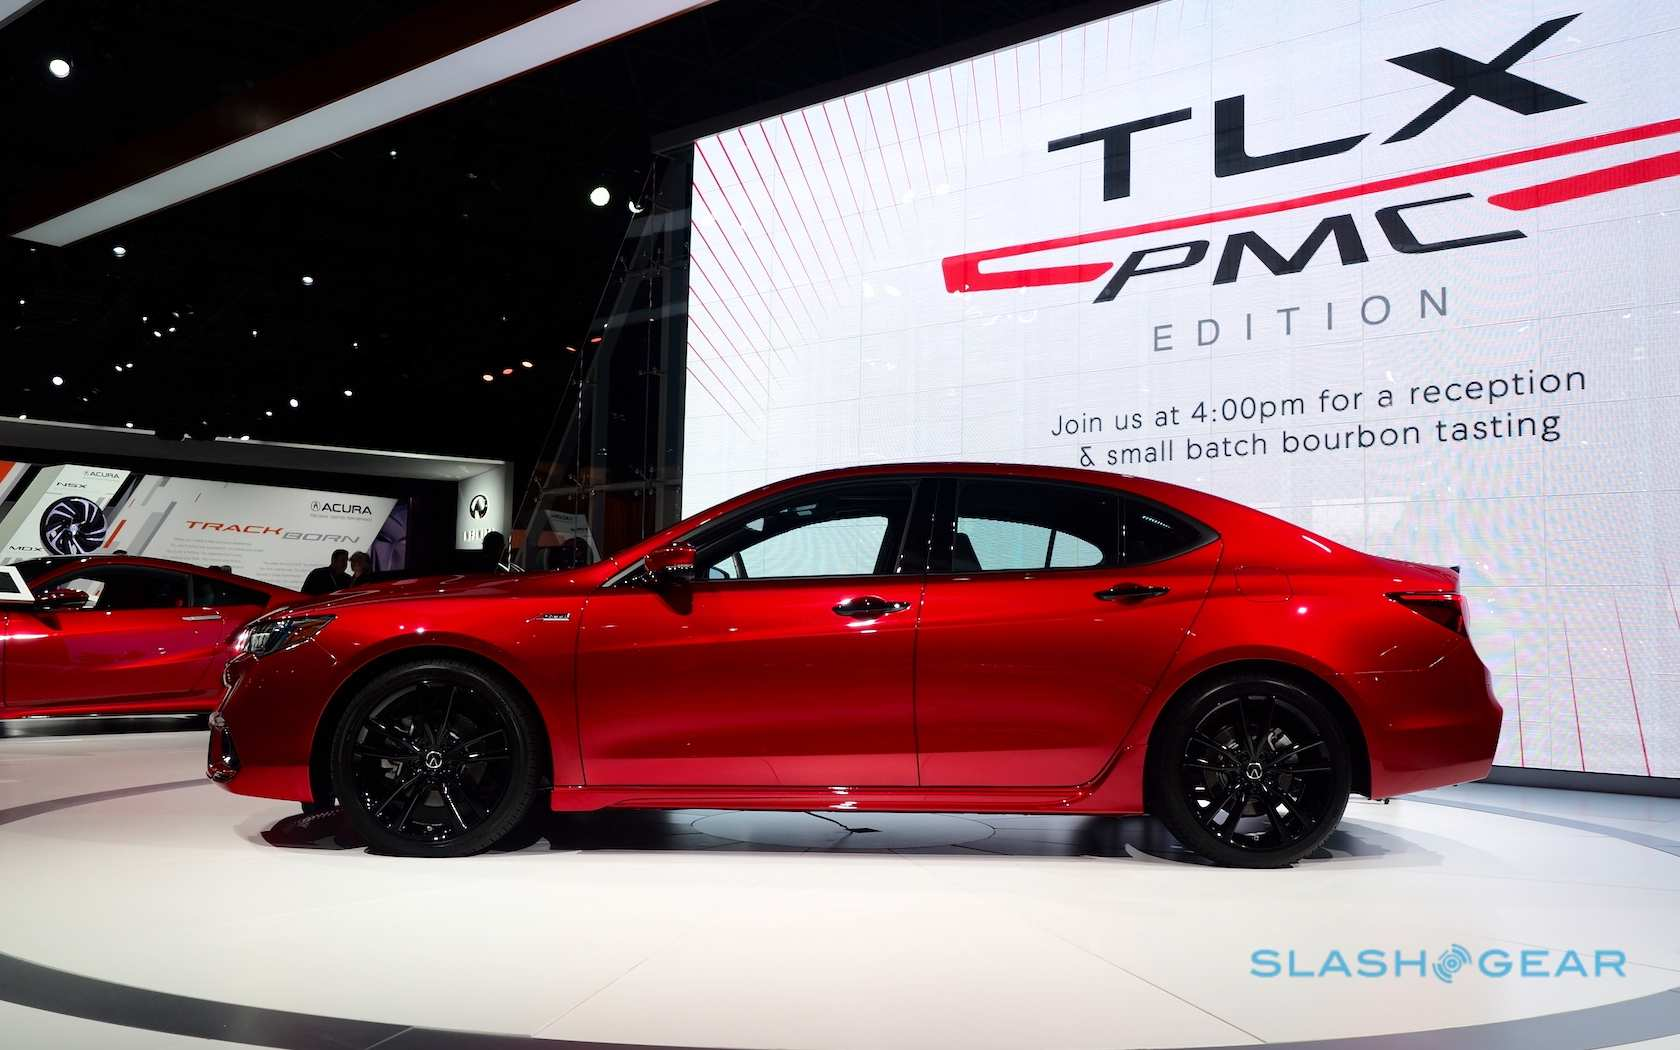 51 A 2020 Acura Tlx Pmc Edition Price Rumors